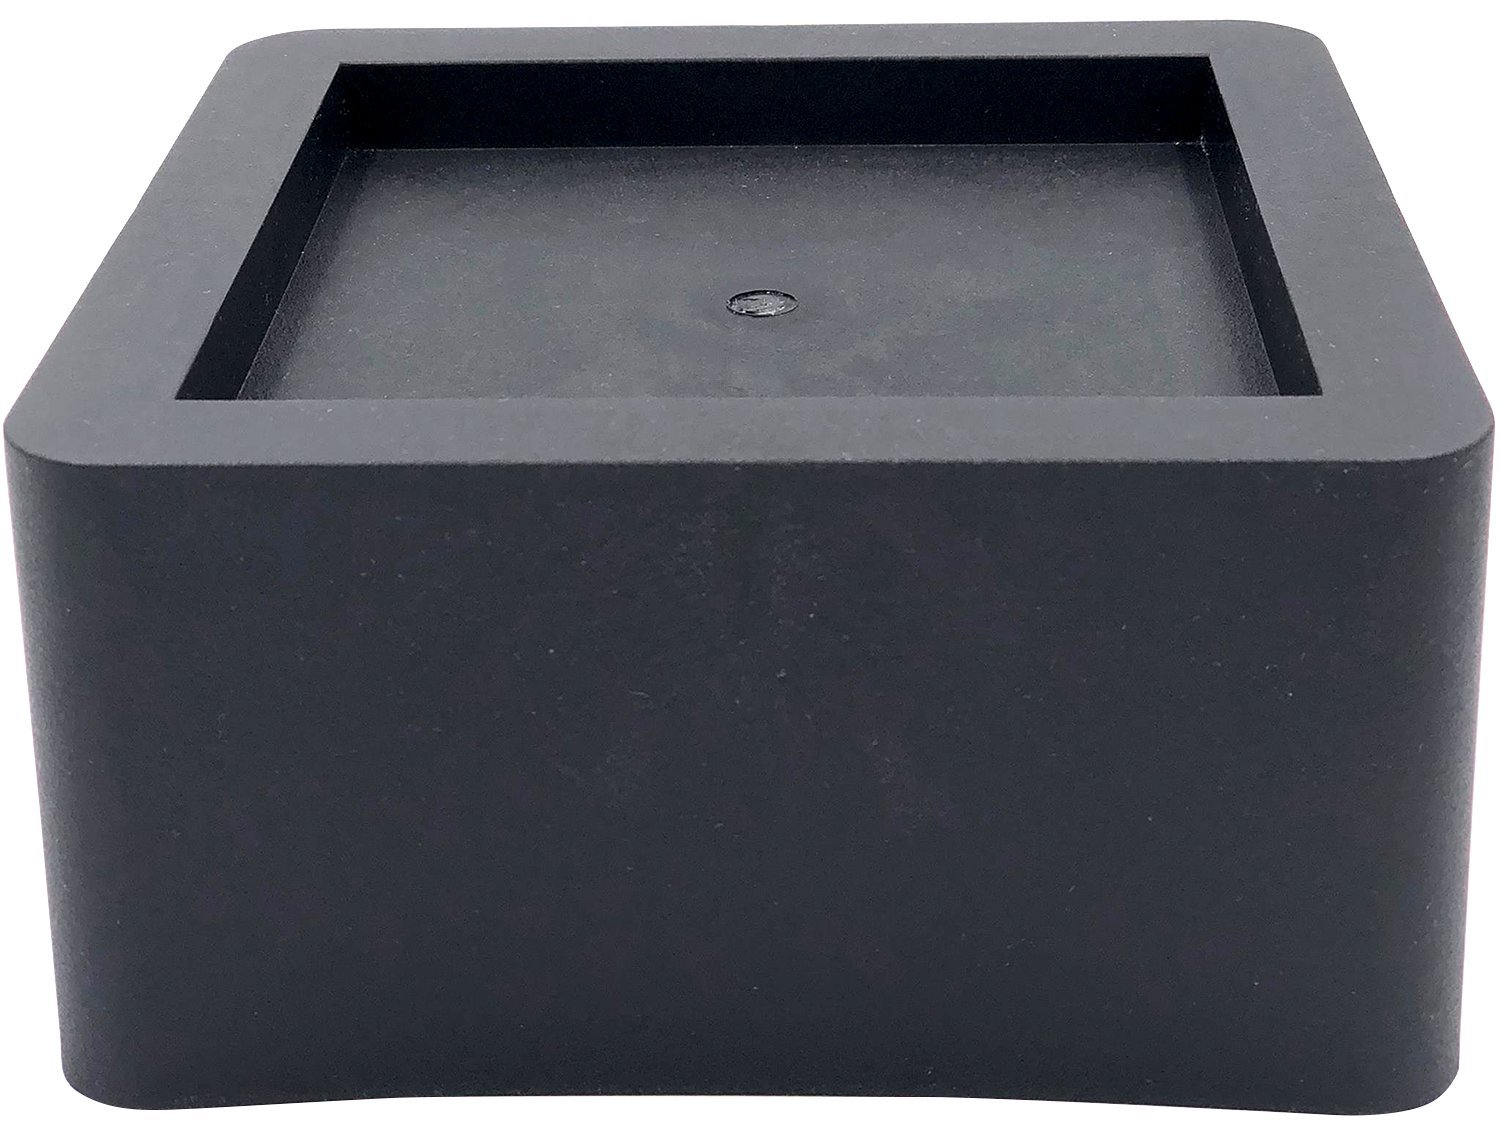 DuraCasa 3 Inch Bed Risers - Fits Huge 5.5 Inch Bed or Furniture Post, Creates an Additional 3 Inches of Height or Storage! Heavy-Duty Table, Chair, Desk or Sofa Riser (6, 3 Inch Black) by DuraCasa (Image #1)